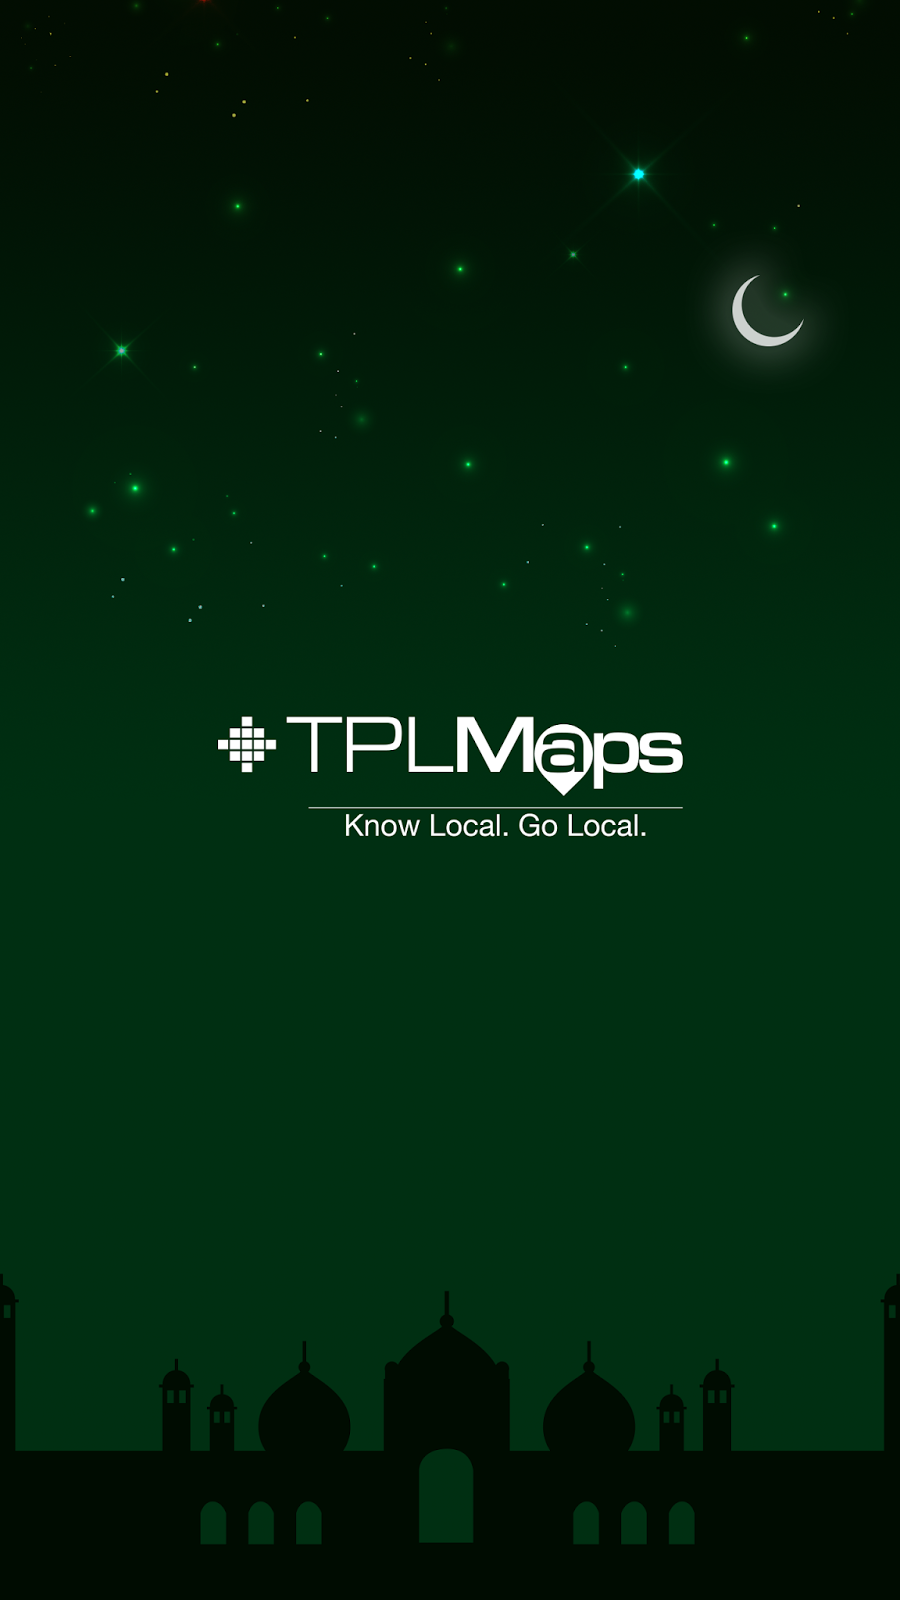 in an effort to provide convenience to its digital savvy users tpl maps bridges the gap between technology and lifestyle with a range of features designed